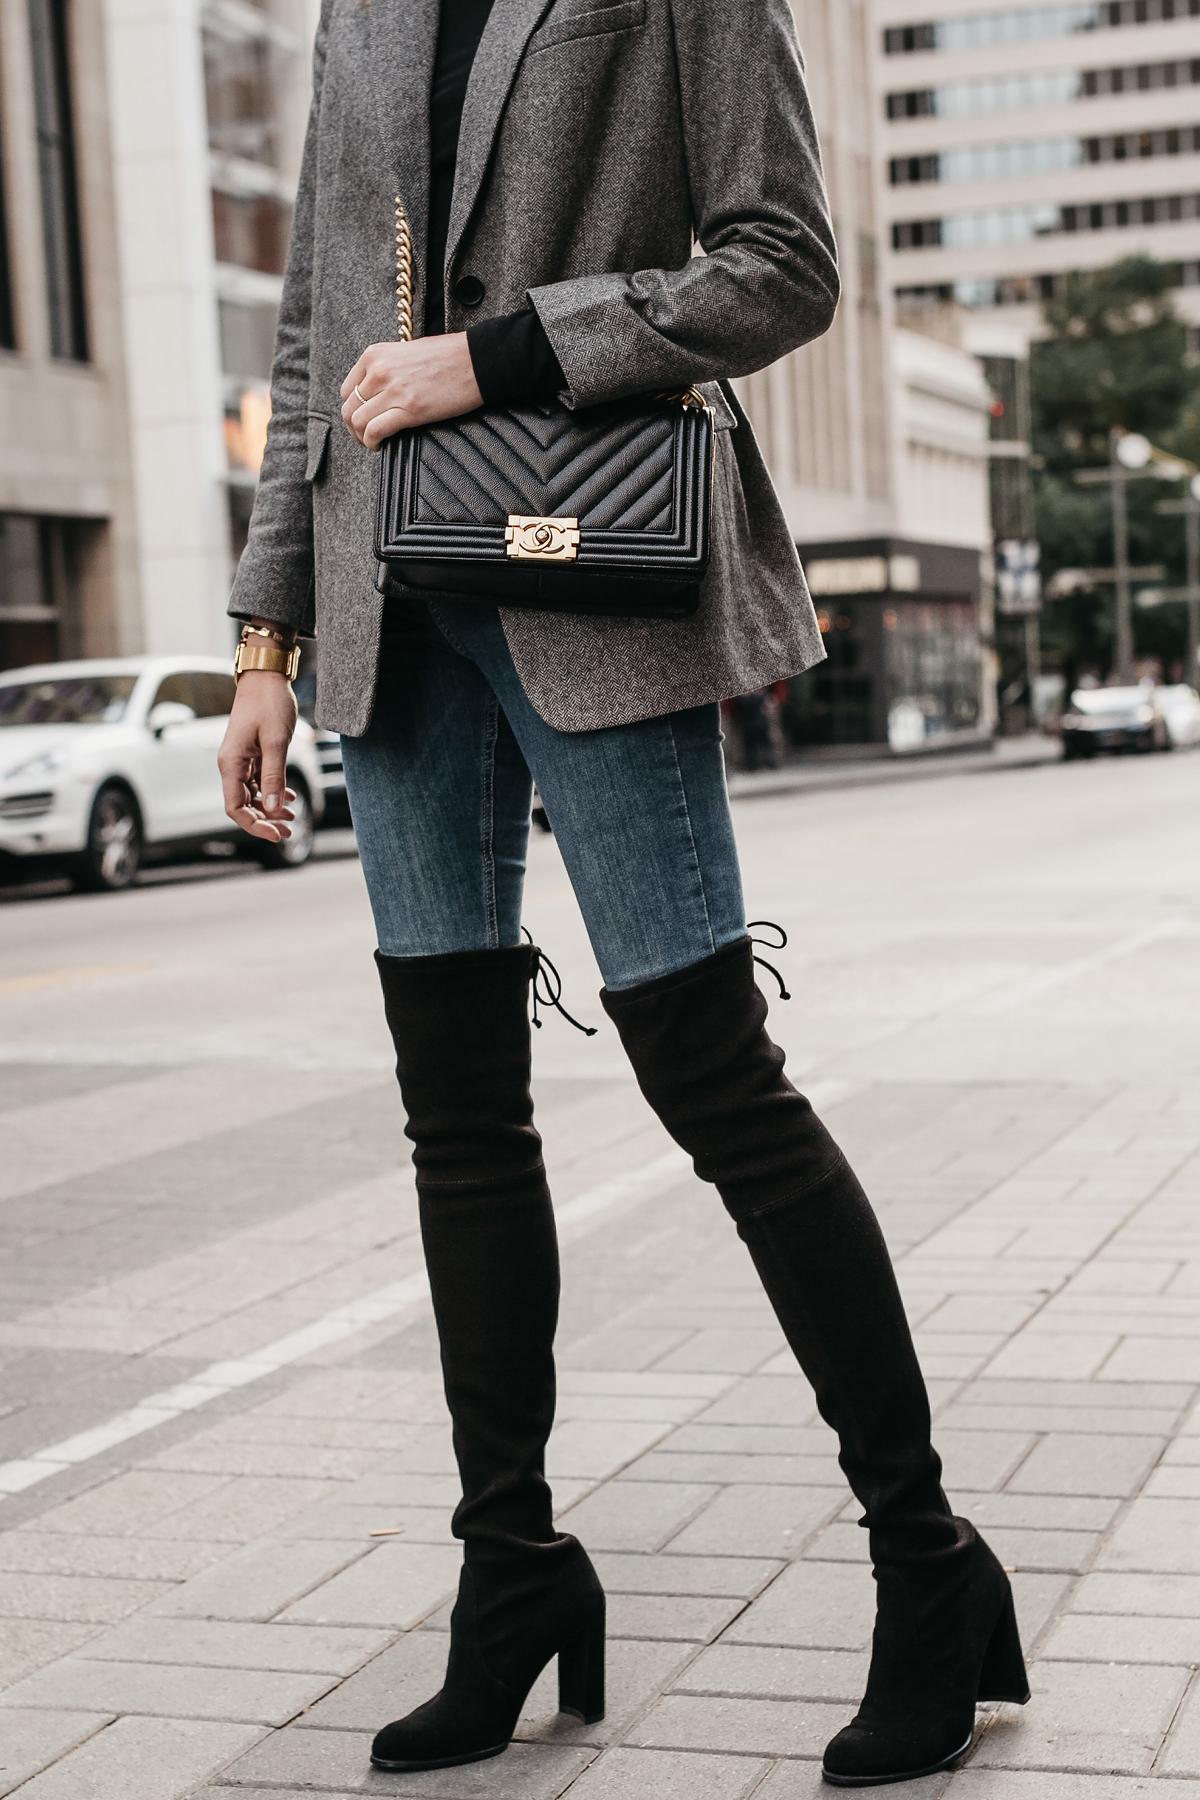 Stuart Weitzman Over the Knee Black Boots Denim Jeans Grey Blazer Chanel Black Boy Bag Fashion Jackson Dallas Blogger Fashion Blogger Street Style